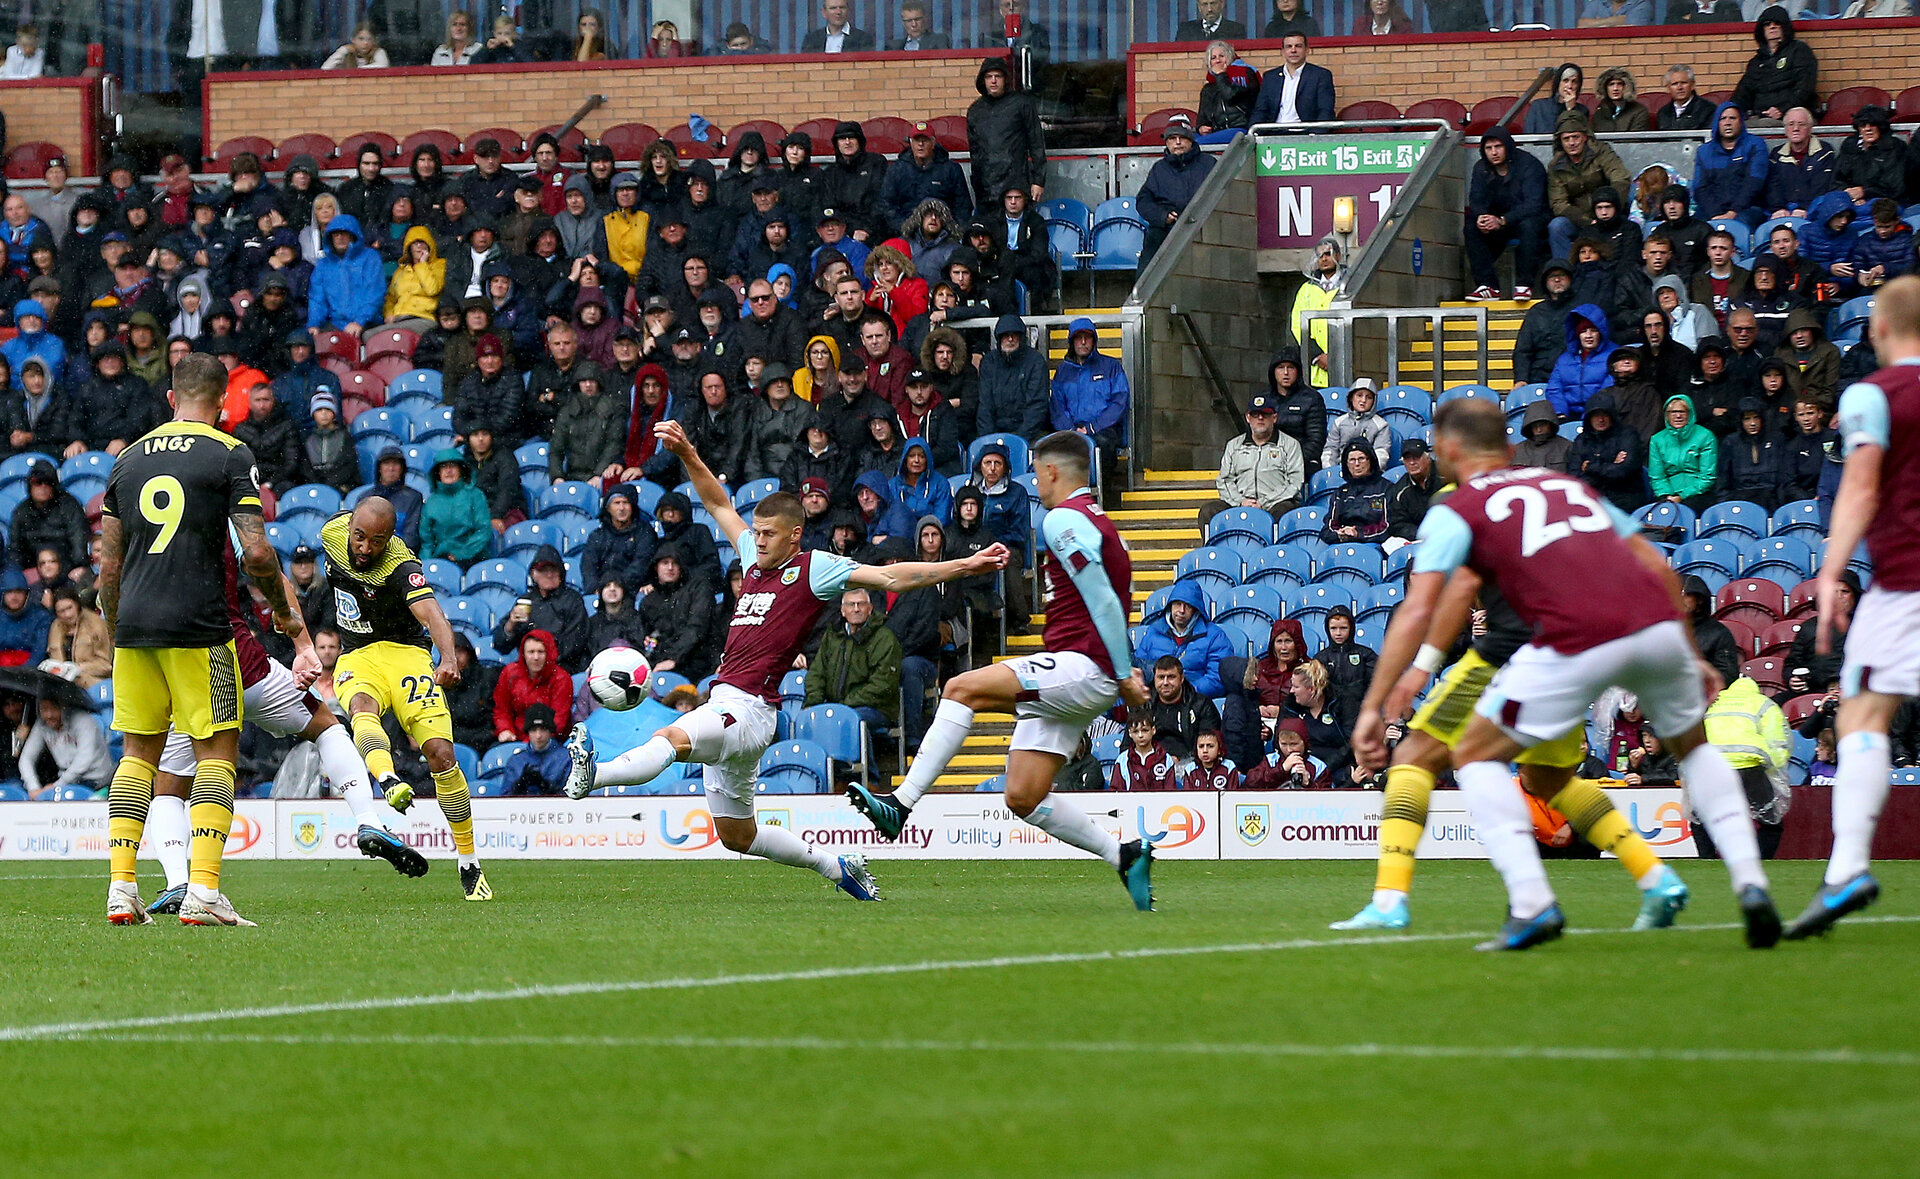 BURNLEY, ENGLAND - AUGUST 10: Nathan Redmond of Southampton shoots at goal during the Premier League match between Burnley FC and Southampton FC at Turf Moor on August 10, 2019 in Burnley, United Kingdom. (Photo by Matt Watson/Southampton FC via Getty Images)